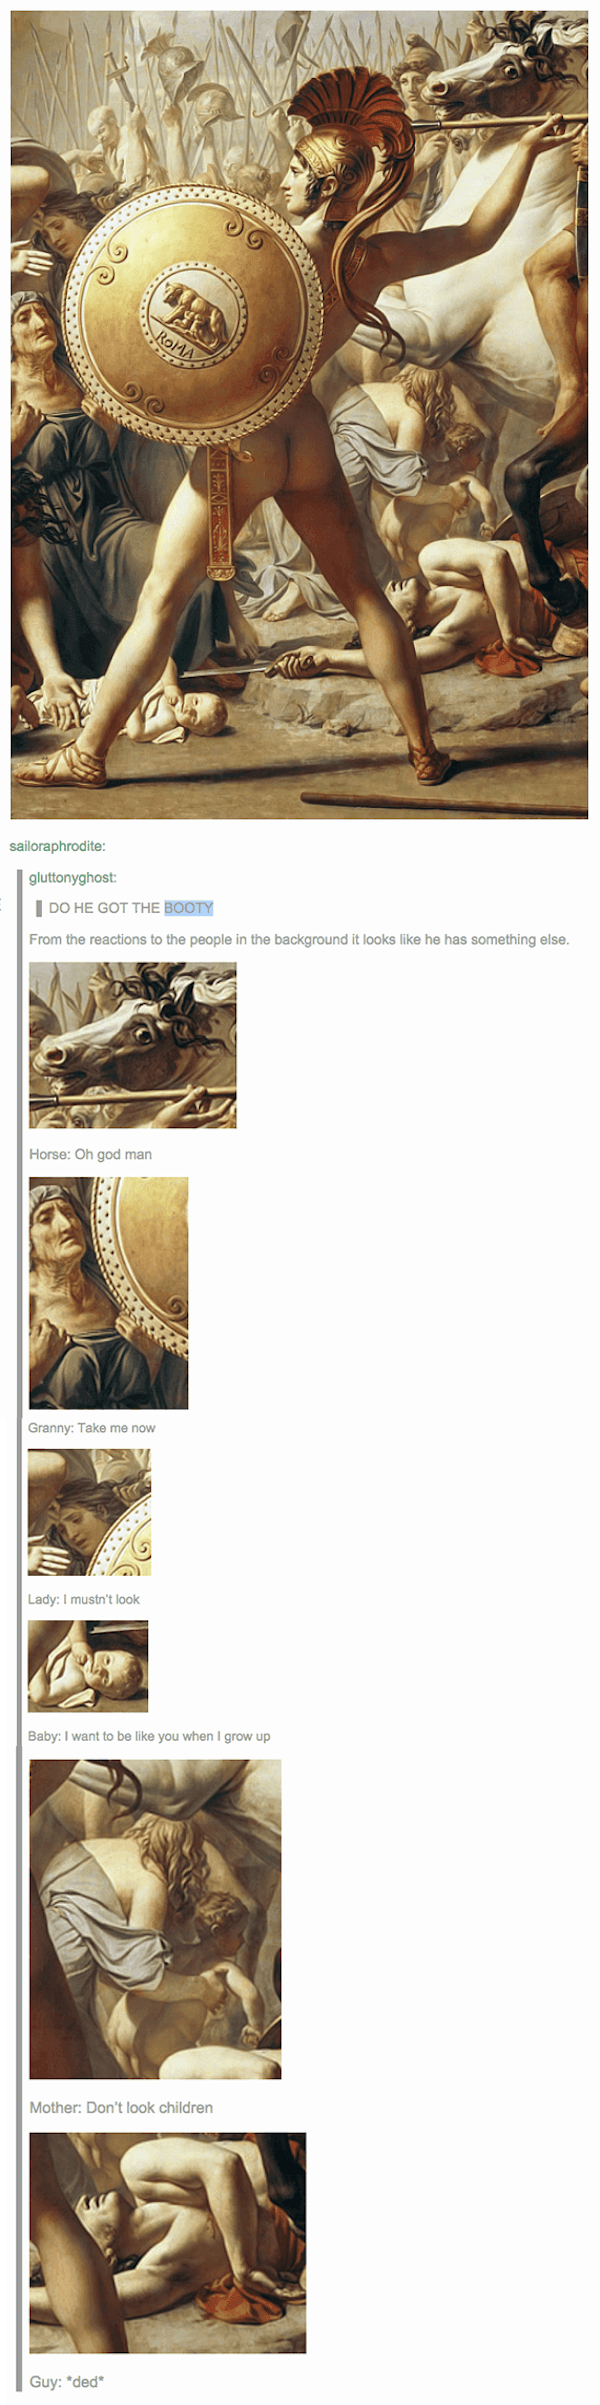 Tumblr Art History Butt